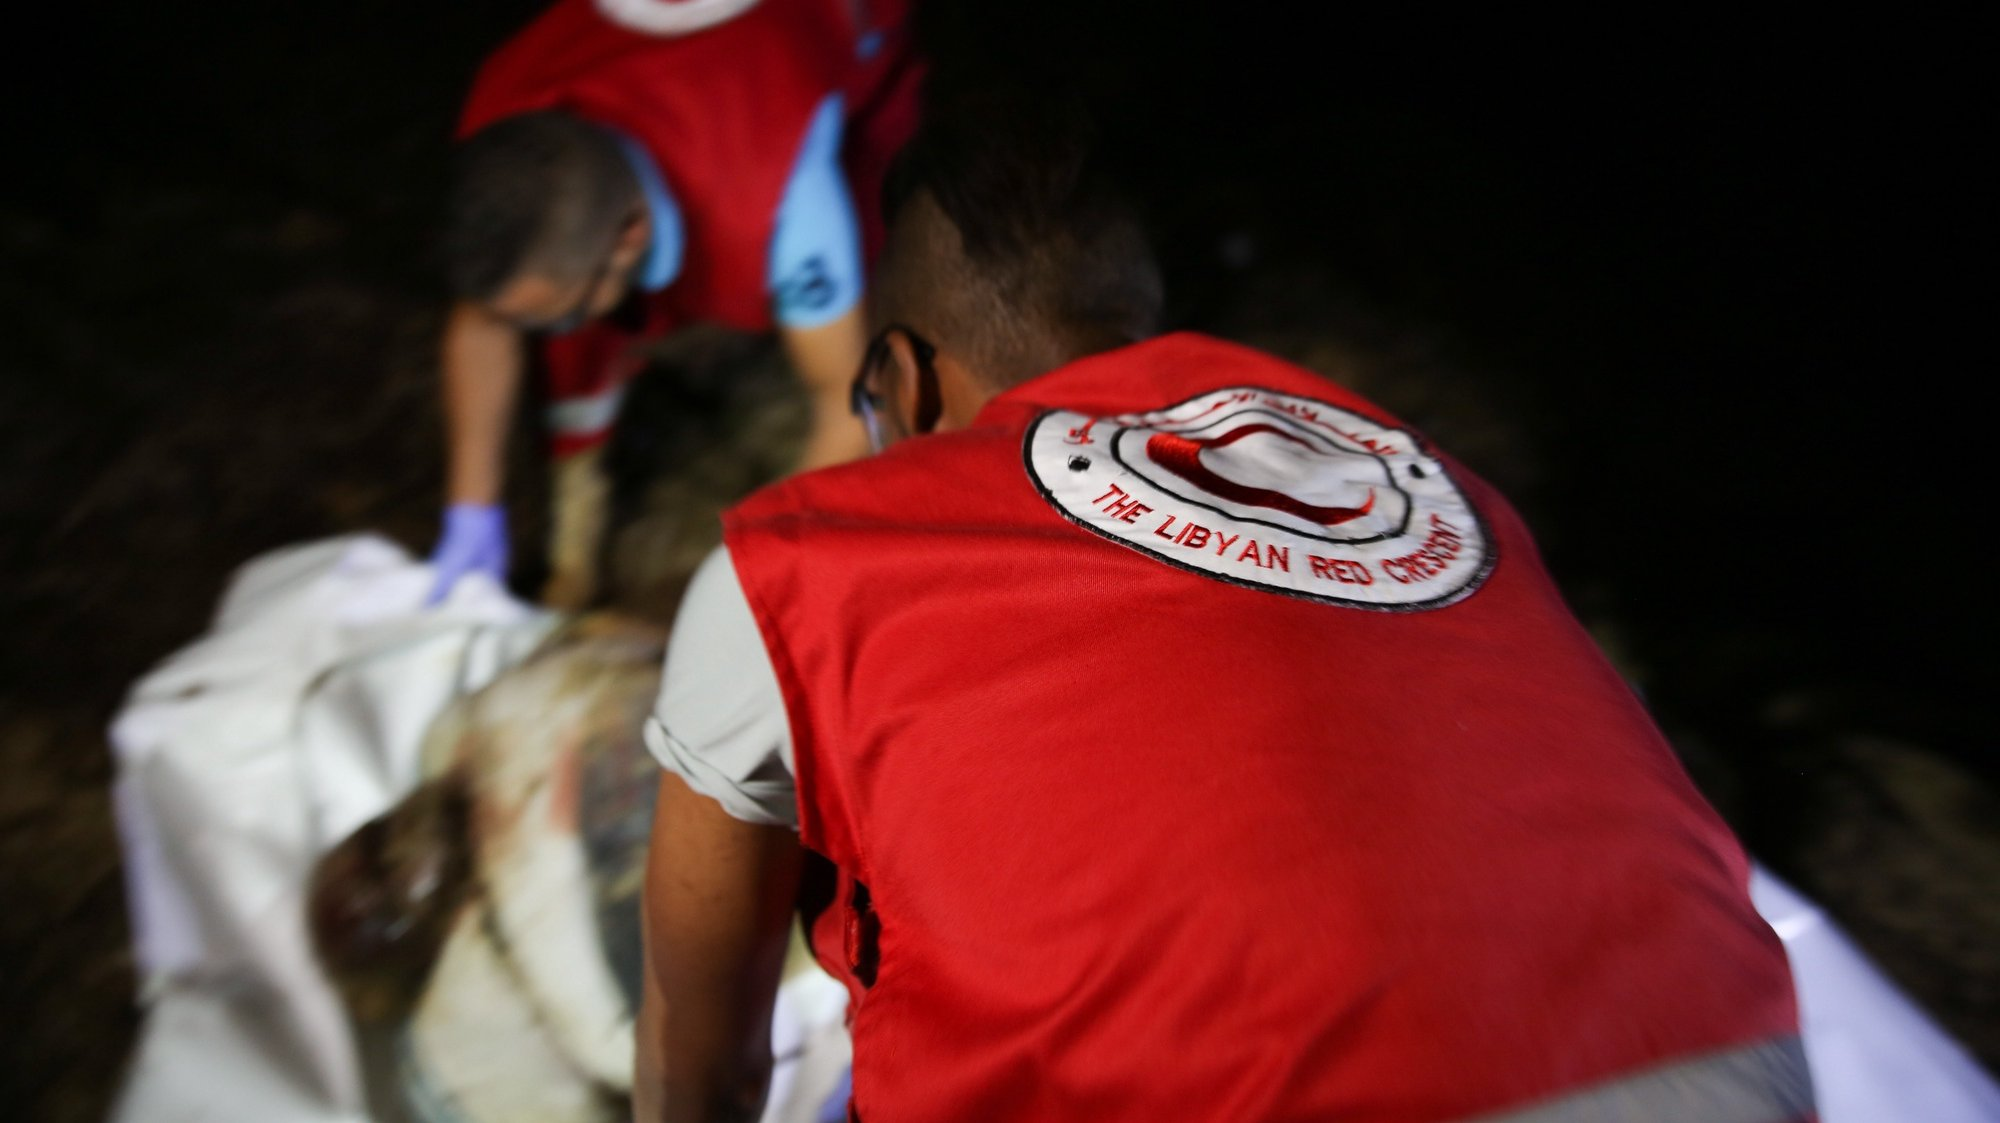 epa06860340 Libyan Red Crescent (LRC) rescue workers carry a body of a drowned migrant on a beach after being washed up, Tajoura, 14 kilometers east of Tripoli, Libya, 02 July 2018 (issued 03 July 2018). According to reports, Libyan rescuers found bodies of 17 drowned migrants over the past two days, after a migrant boat sank off the coast on 29 June with some 100 people missing in the incident.  EPA/STRINGER